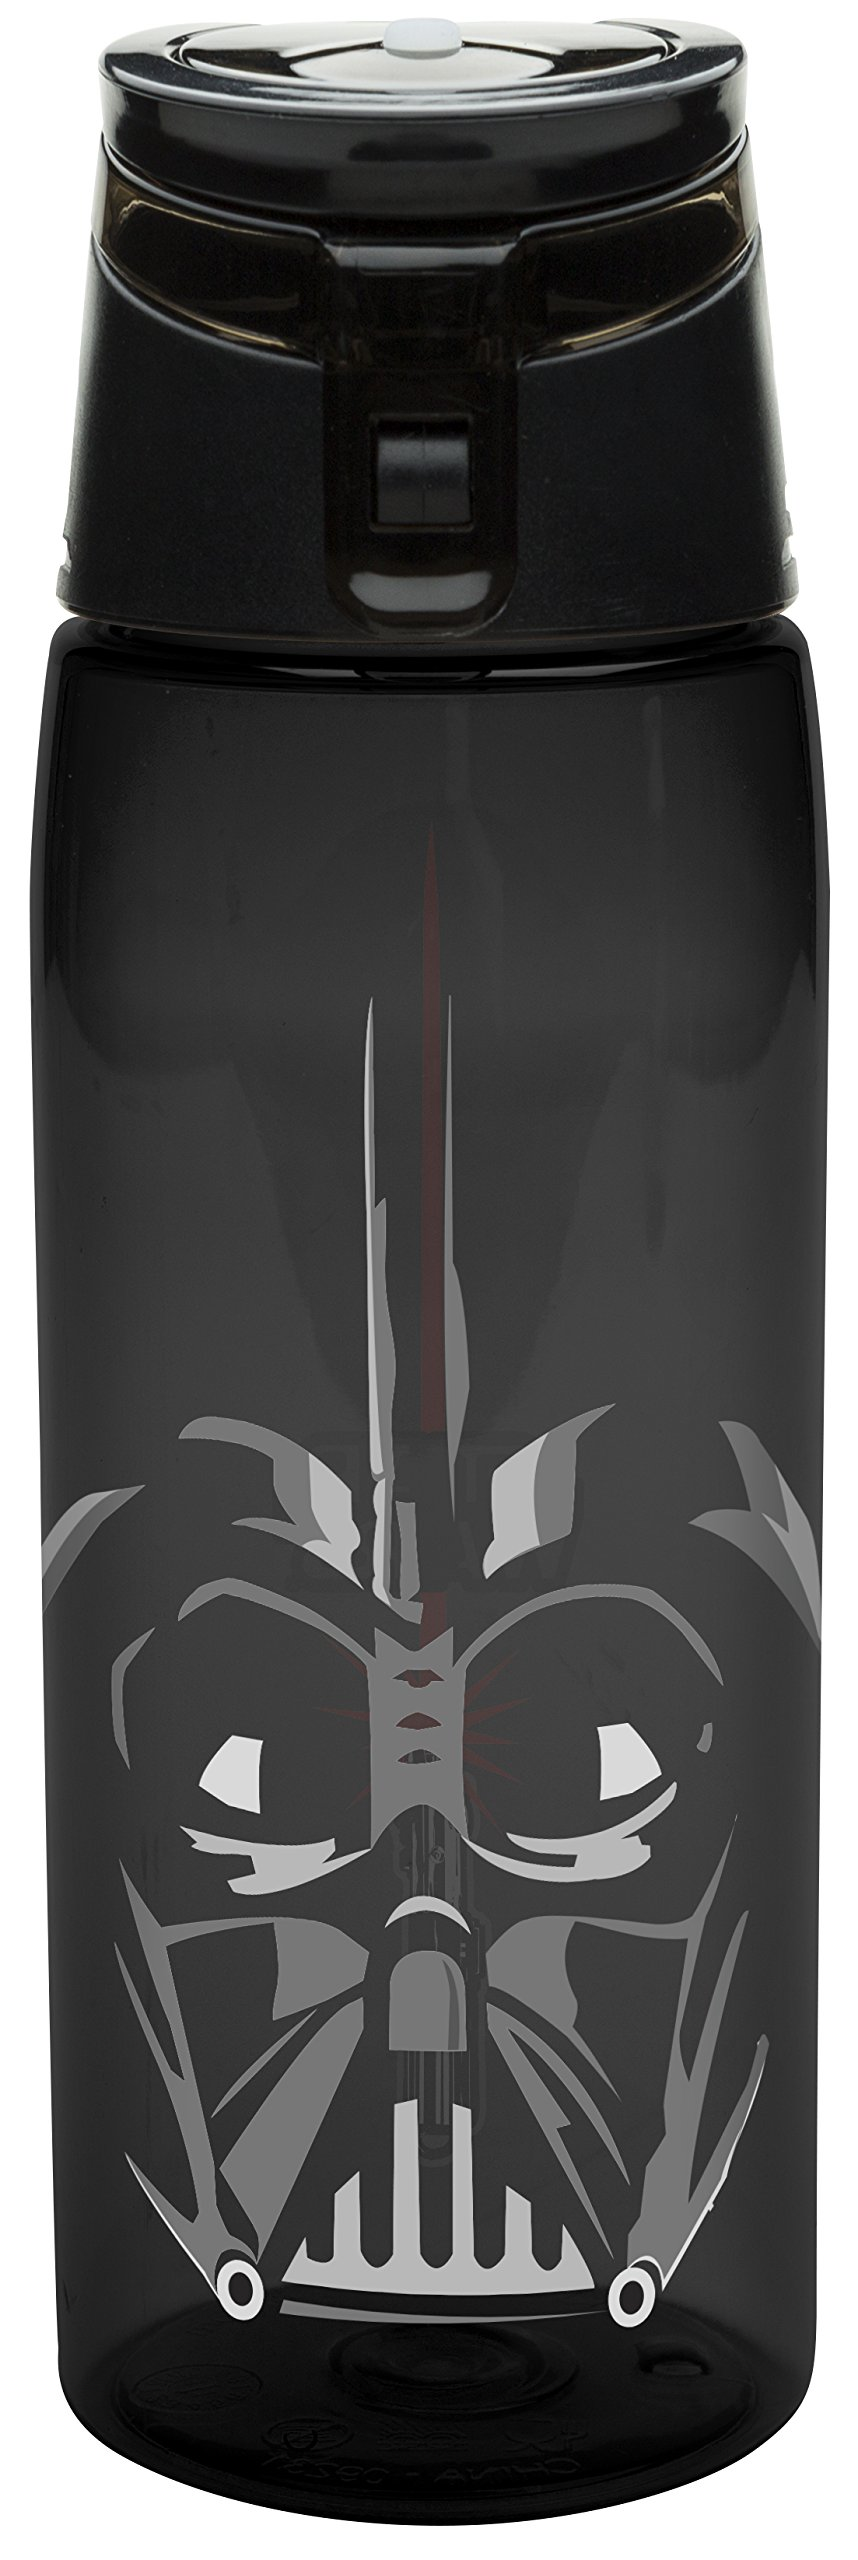 Zak! Designs Tritan Water Bottle with Flip-top Cap with Darth Vader from Star Wars, Break-resistant and BPA-Free Plastic, 25 oz.